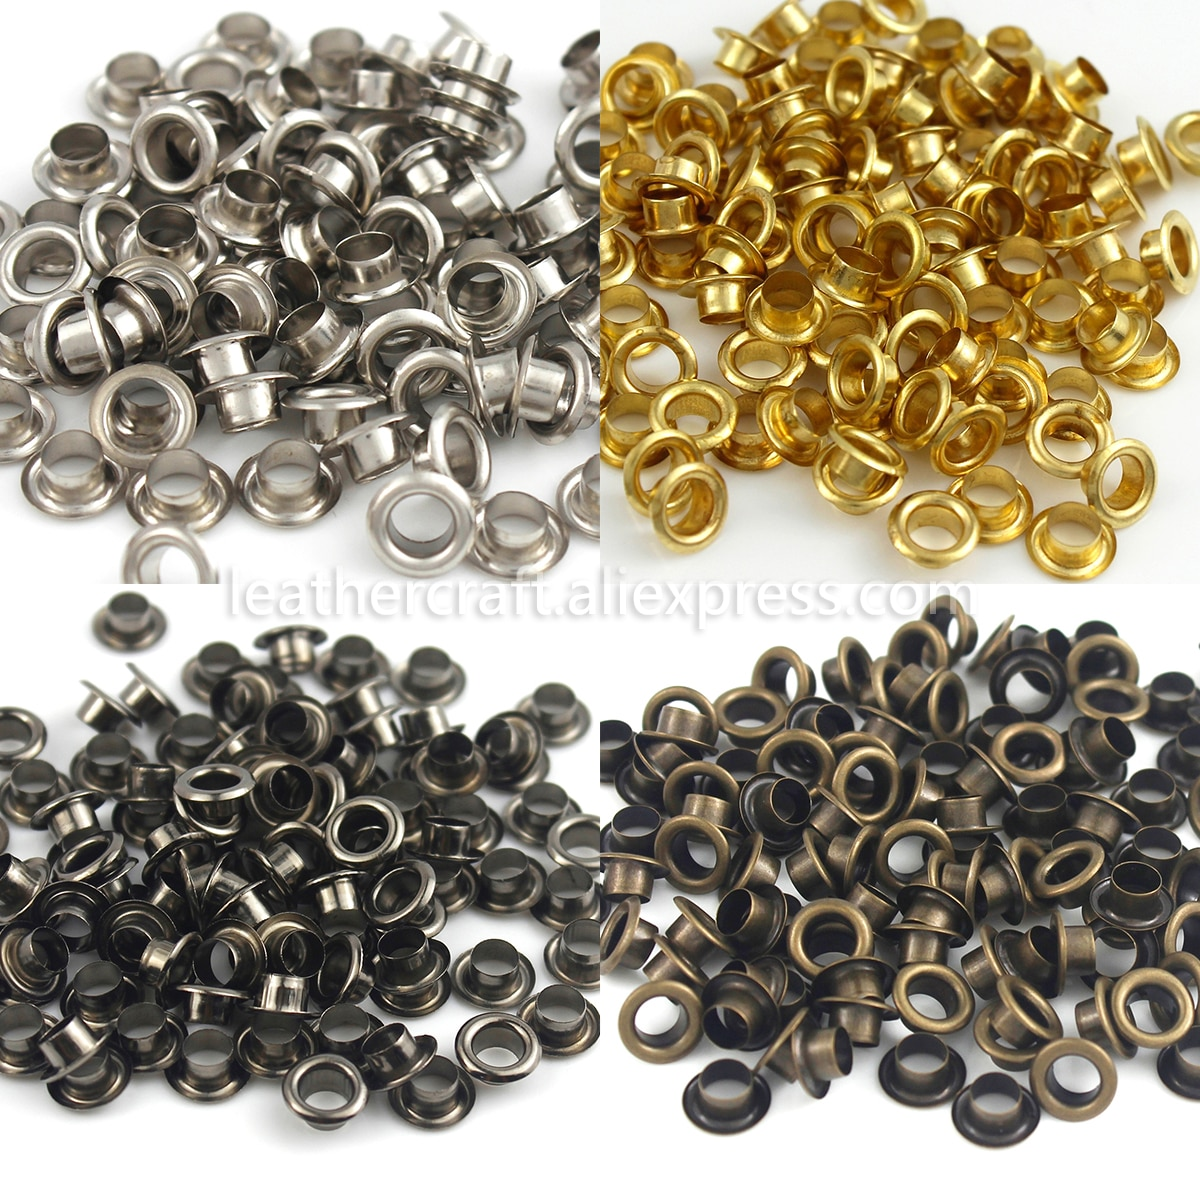 100sets 4mm Brass Eyelet with Washer Leather Craft Repair Grommet Round Eye Rings For Shoes Bag Clot